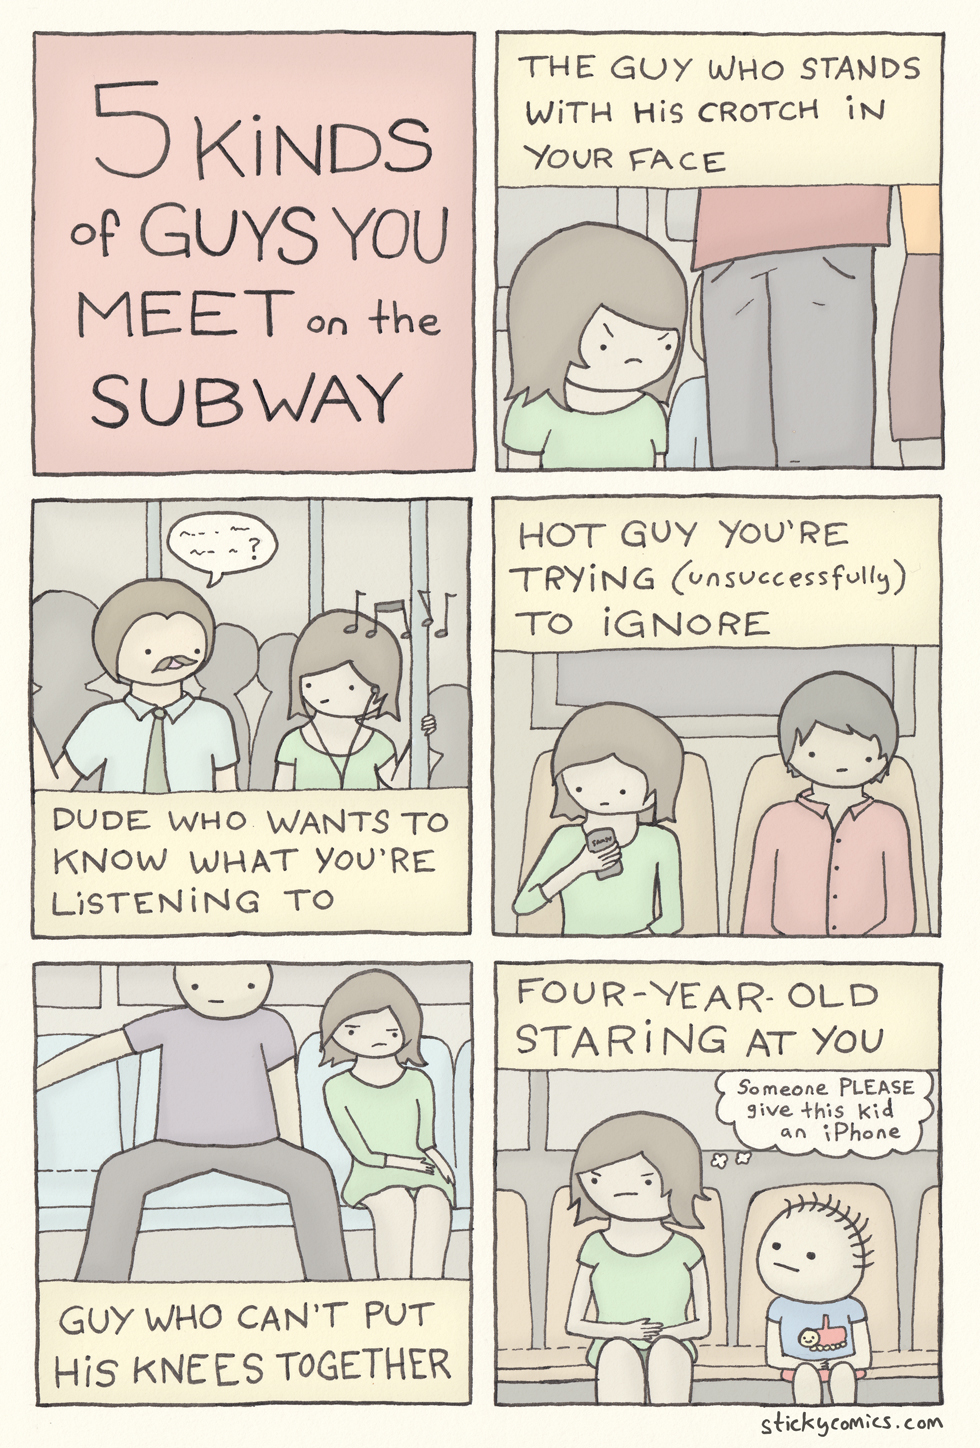 5 kinds of guys you meet on the subway